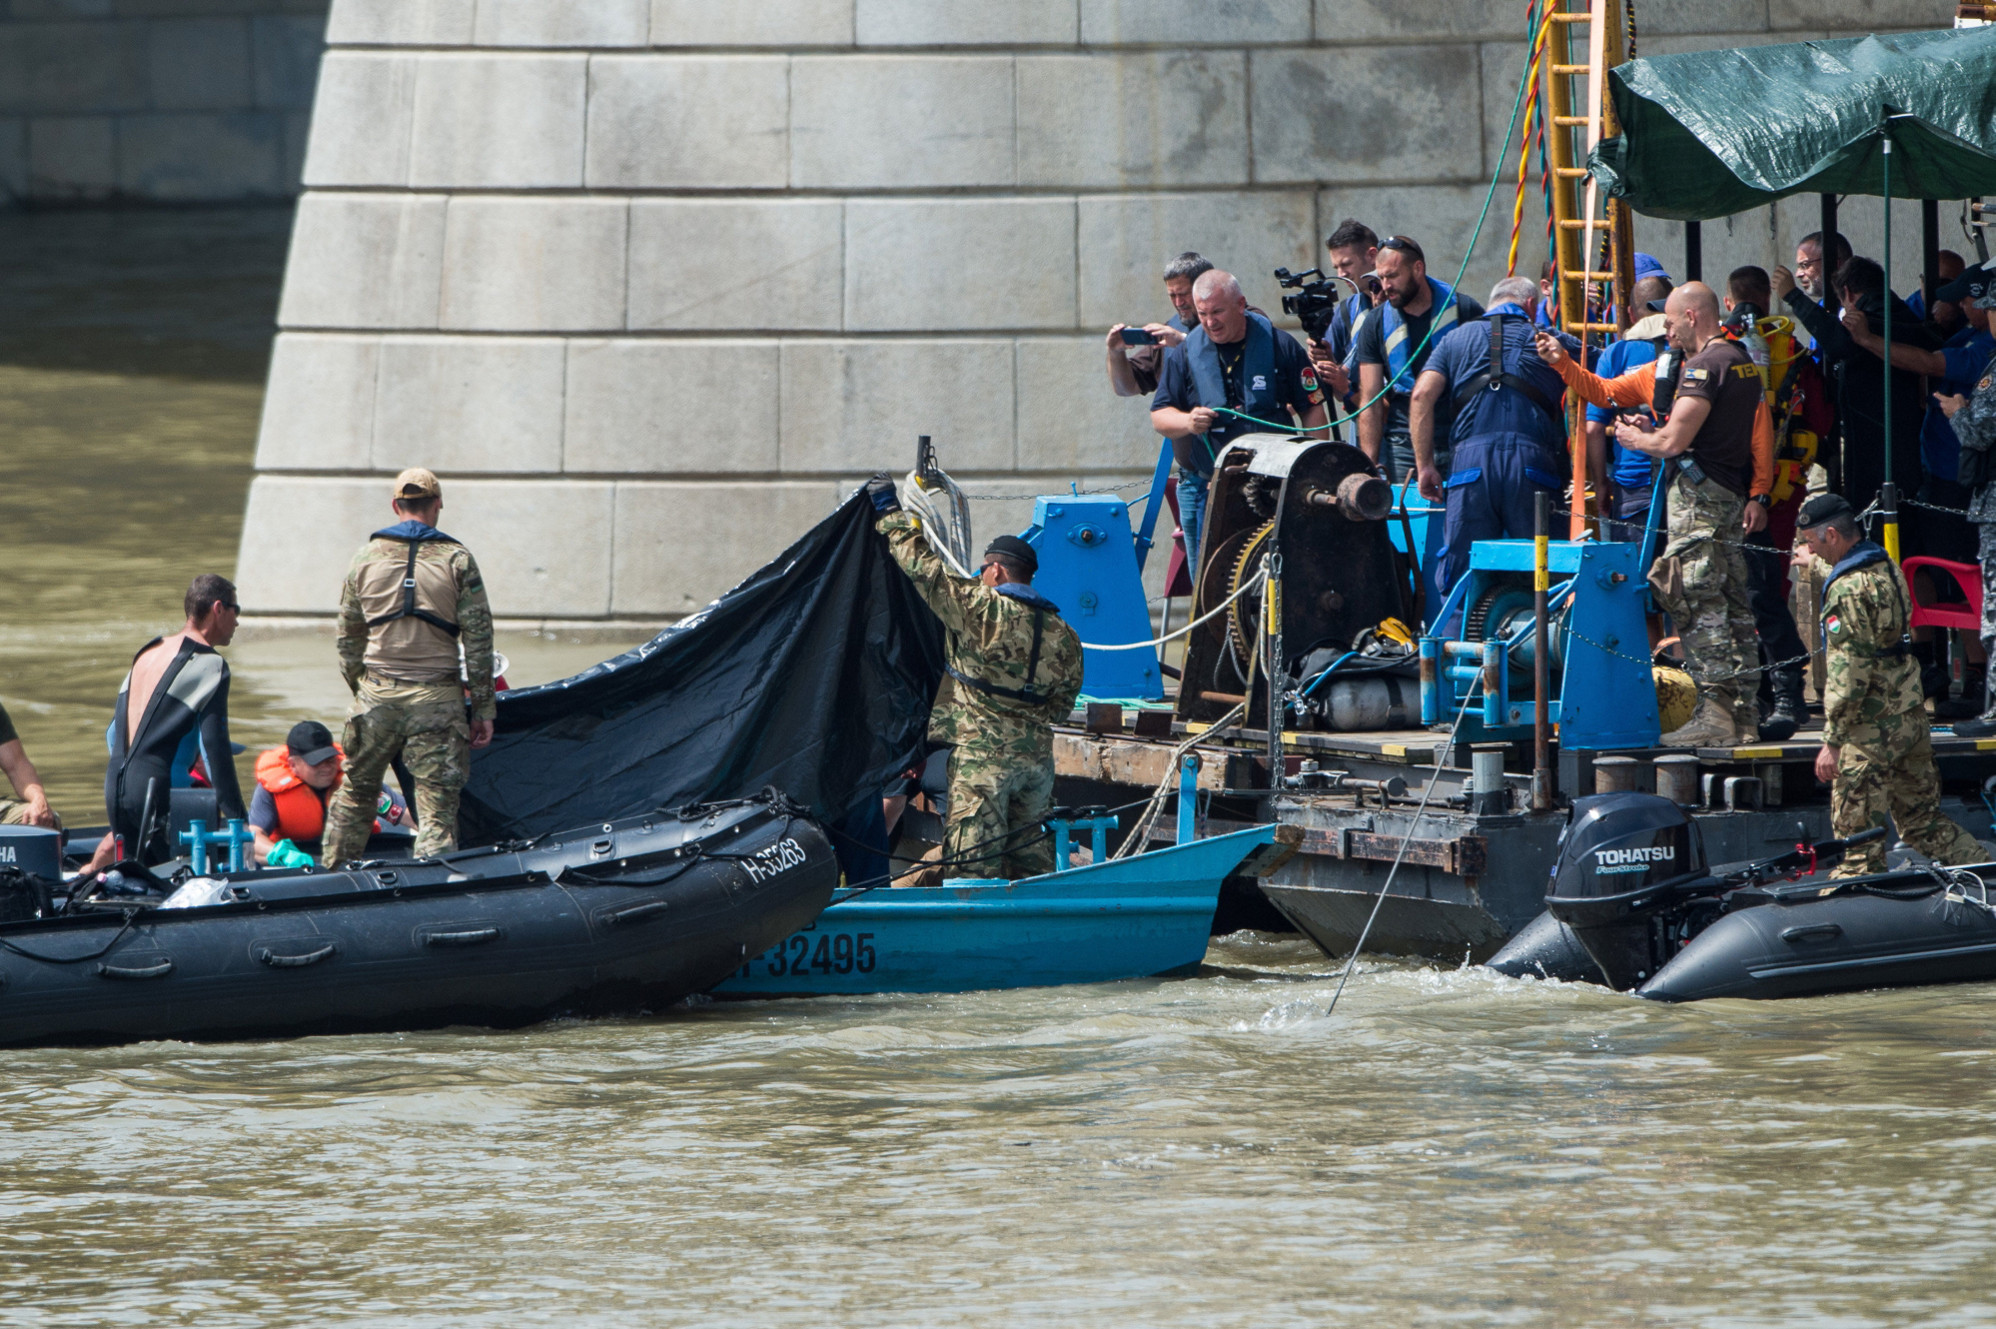 Video: Another Two Victims Of Budapest Ship Collision Found